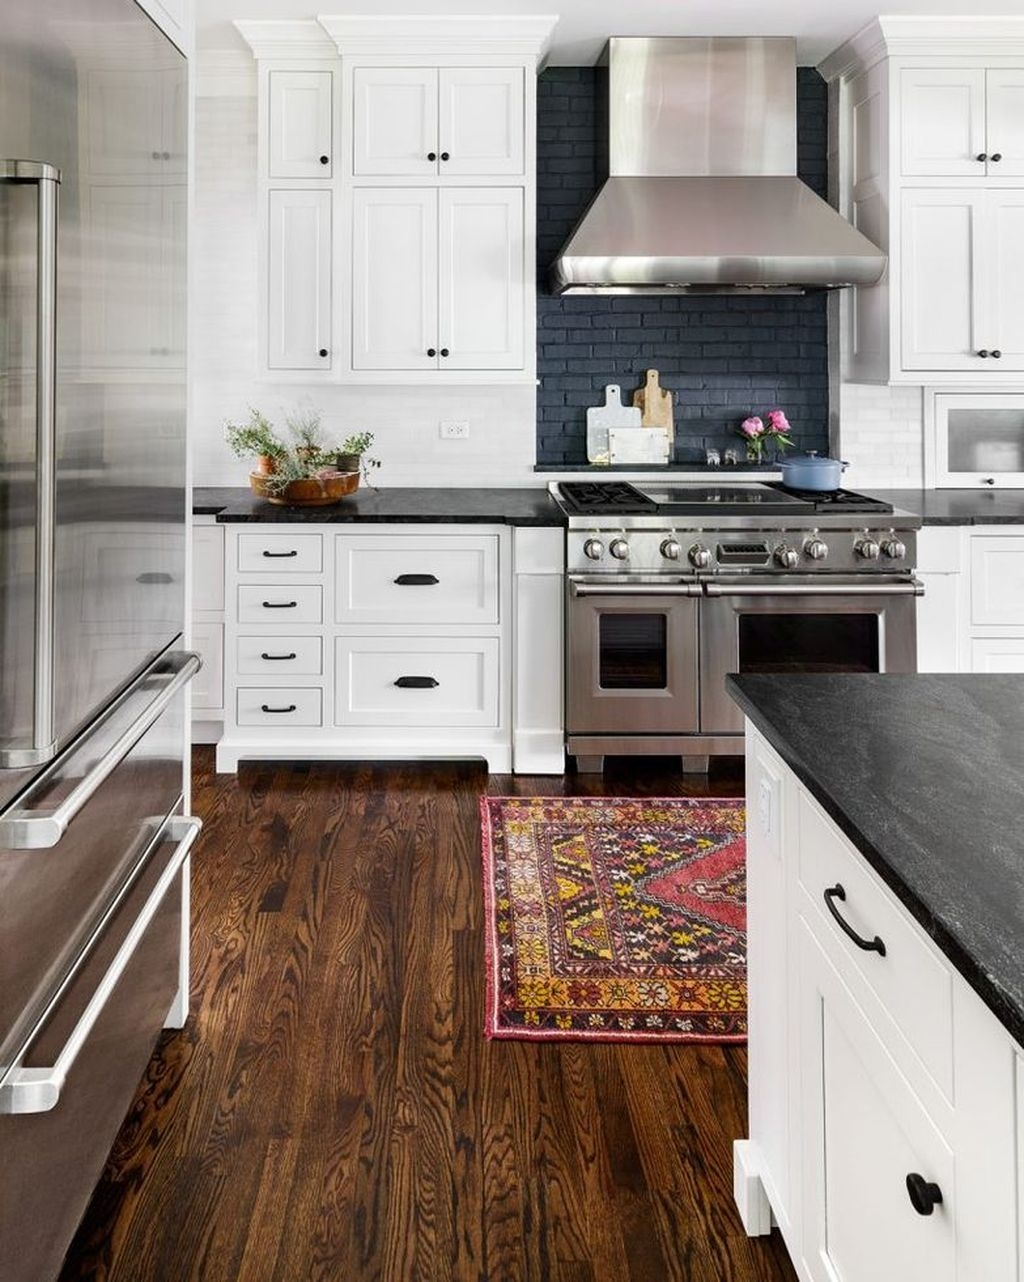 Incredible Black And White Kitchen Ideas To Try10